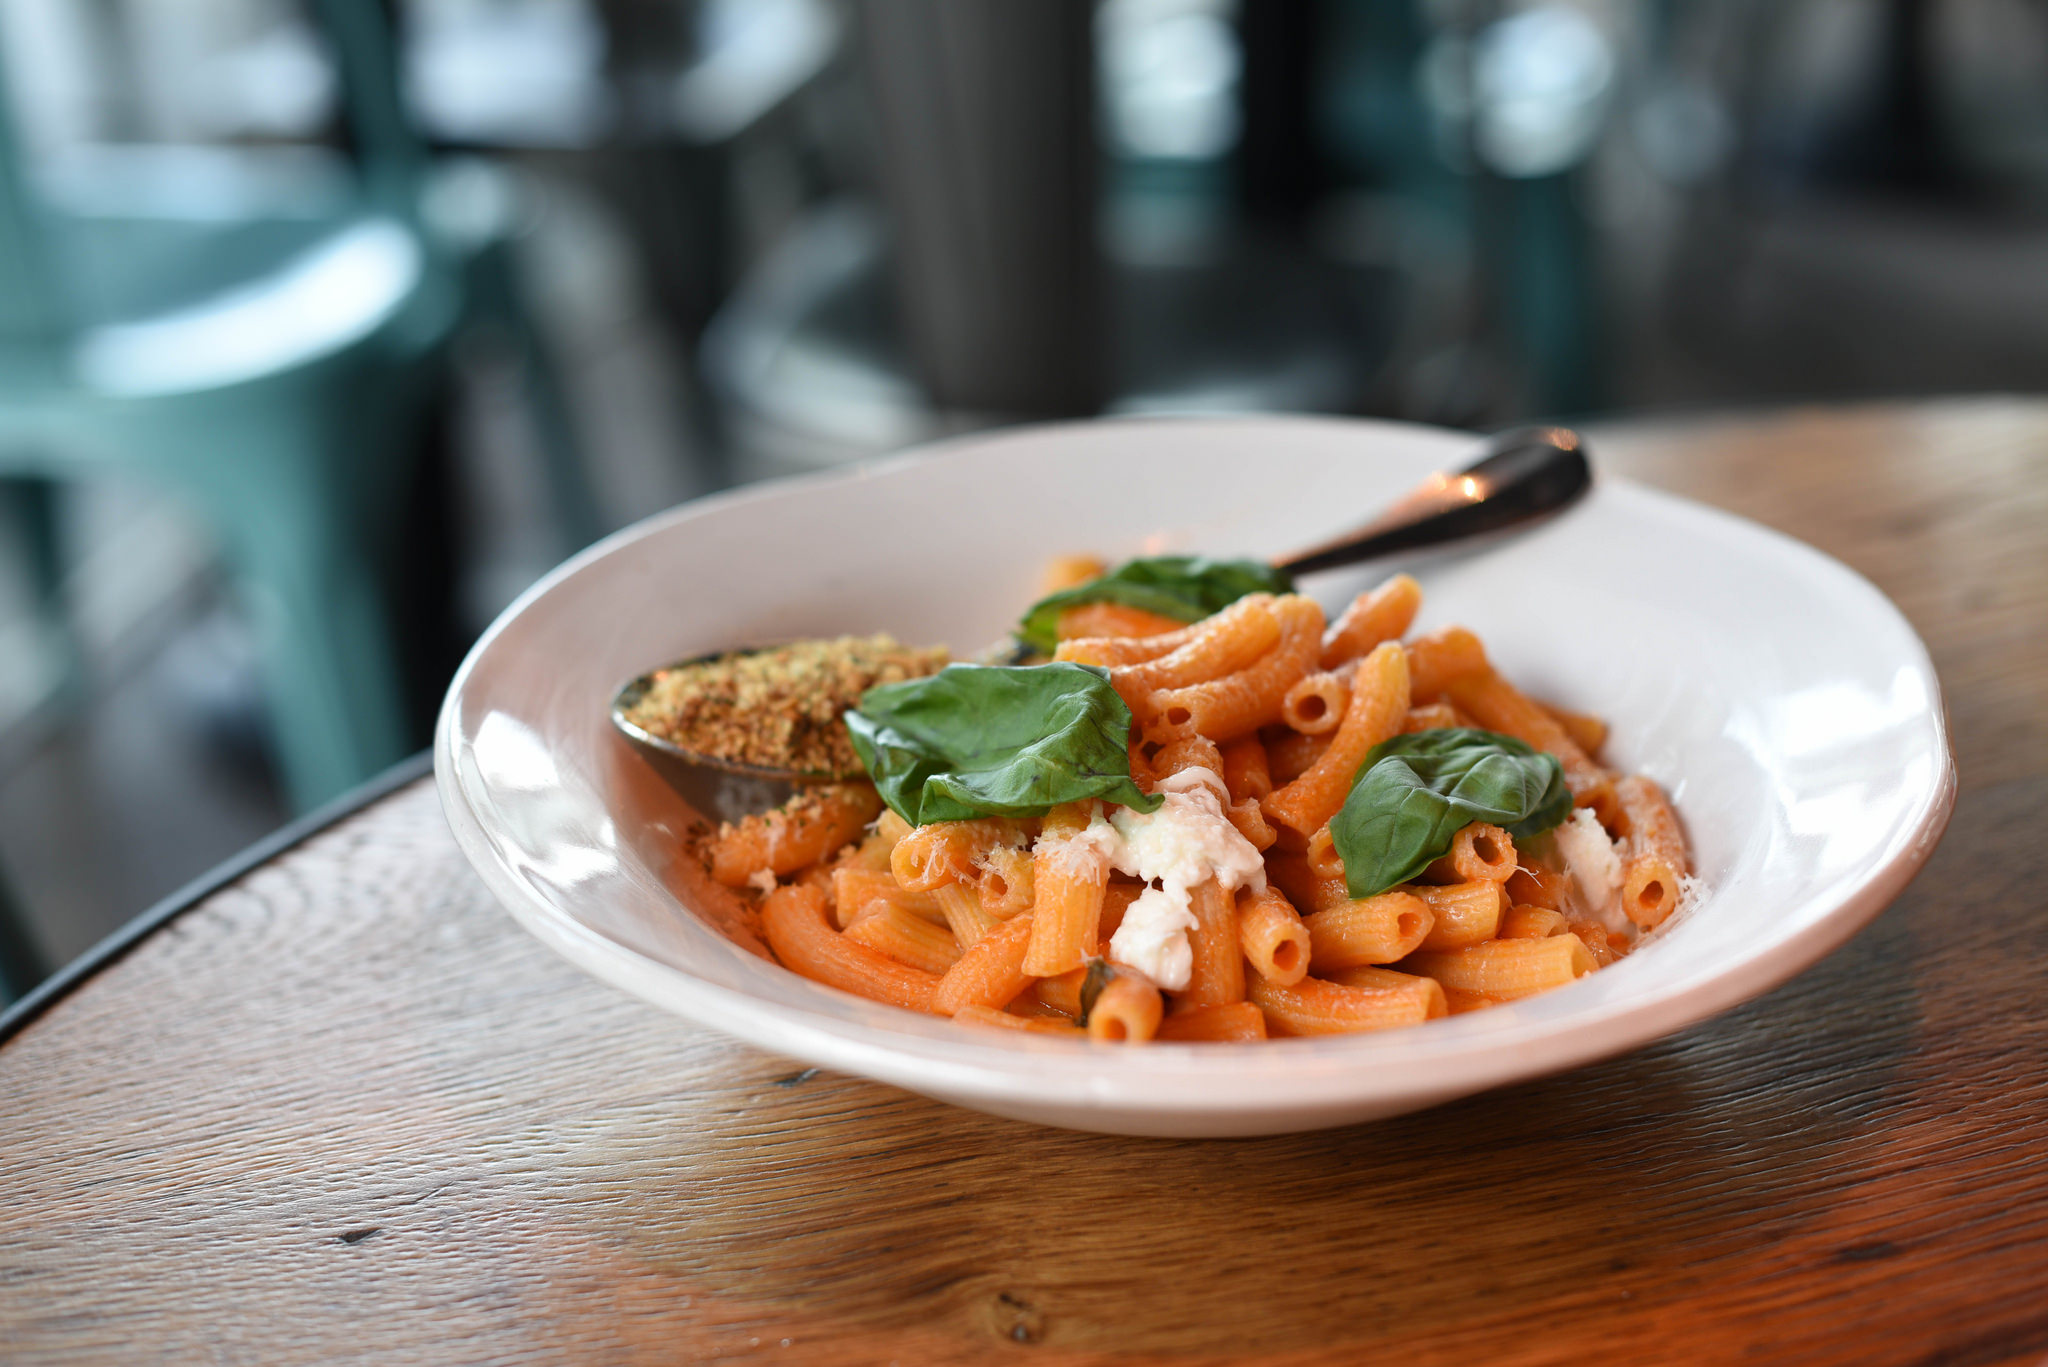 Penne Pomodoro (S$19++) - Penne pasta tossed with sweet tomatoes, garlic & basil, topped with mozzarella & crunchy, herby breadcrumbs